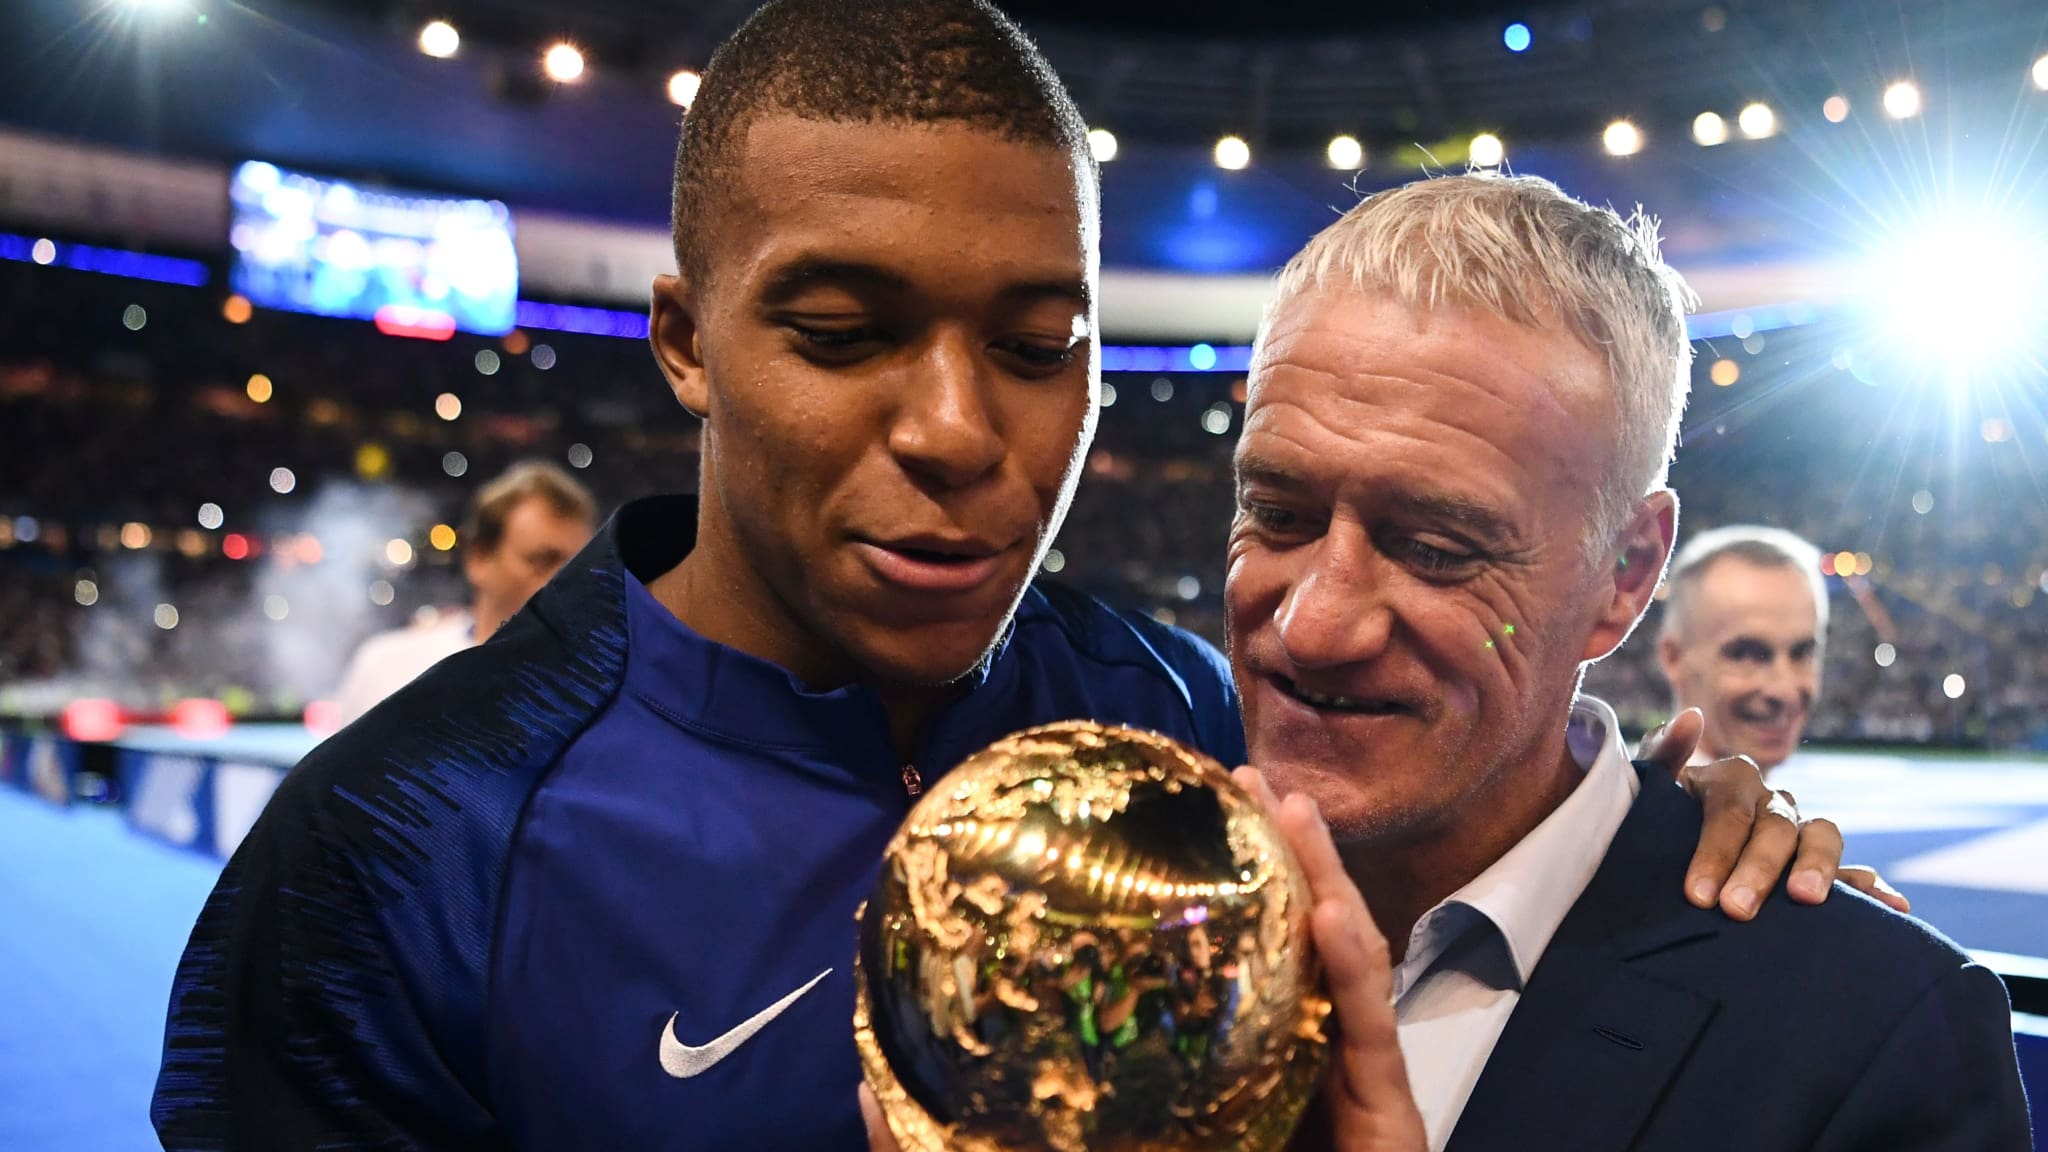 France's midfielder Kylian Mbappe (L) and France's coach Didier Deschamps pose with the 2018 World Cup trophy